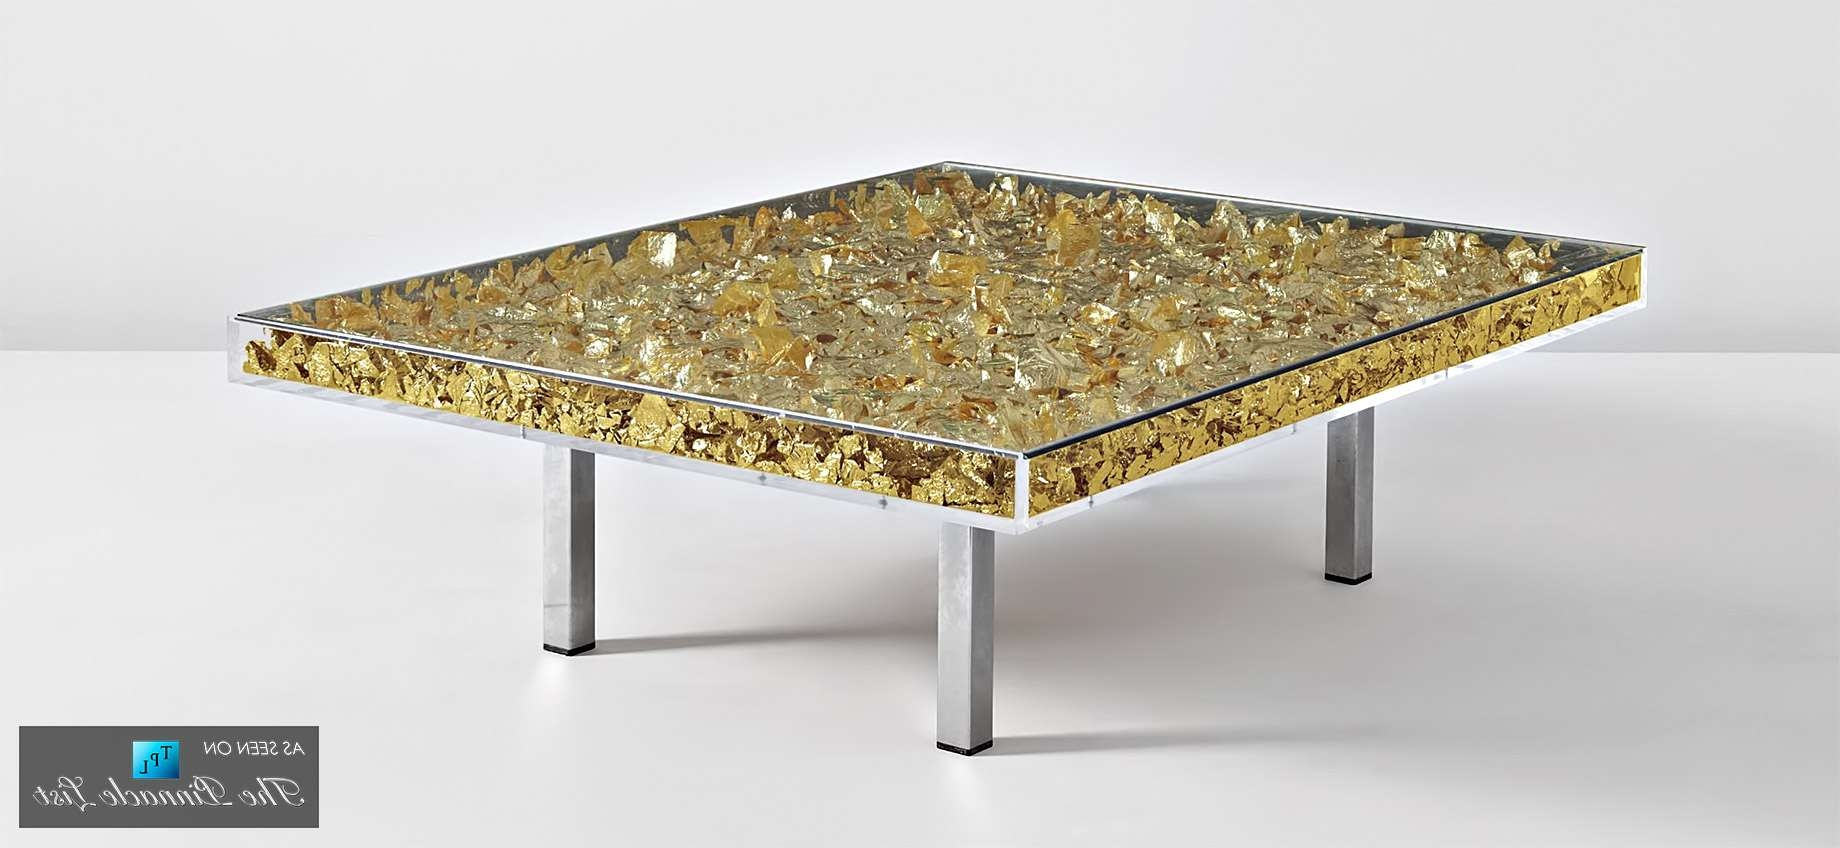 Contemporary Art As Modern Luxury Furniture – Spotlighting The In Well Known Art Coffee Tables (View 14 of 20)